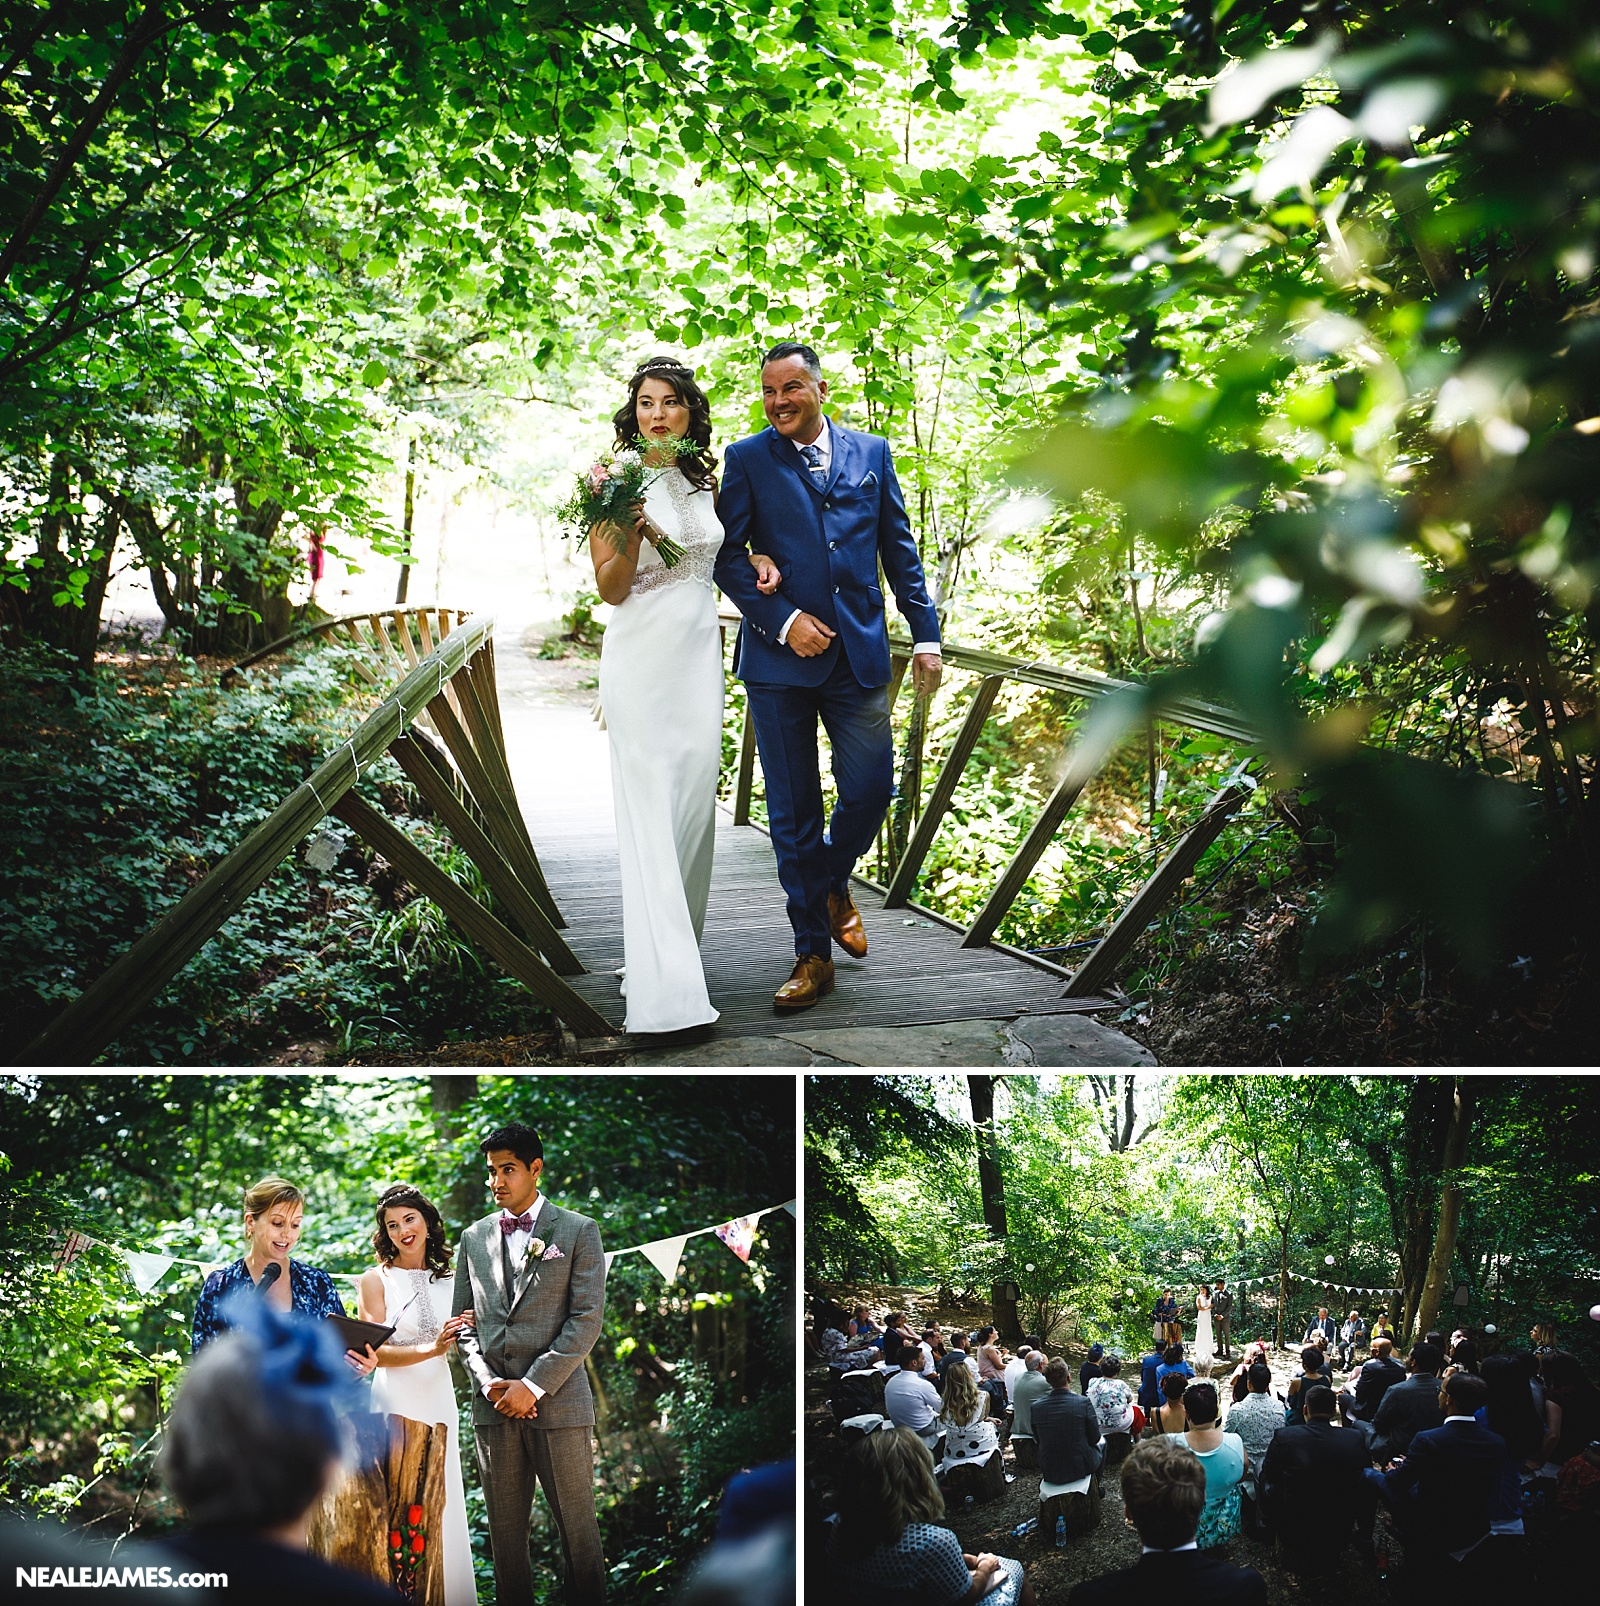 A father turning up with his daughter for a woodland wedding in this picture